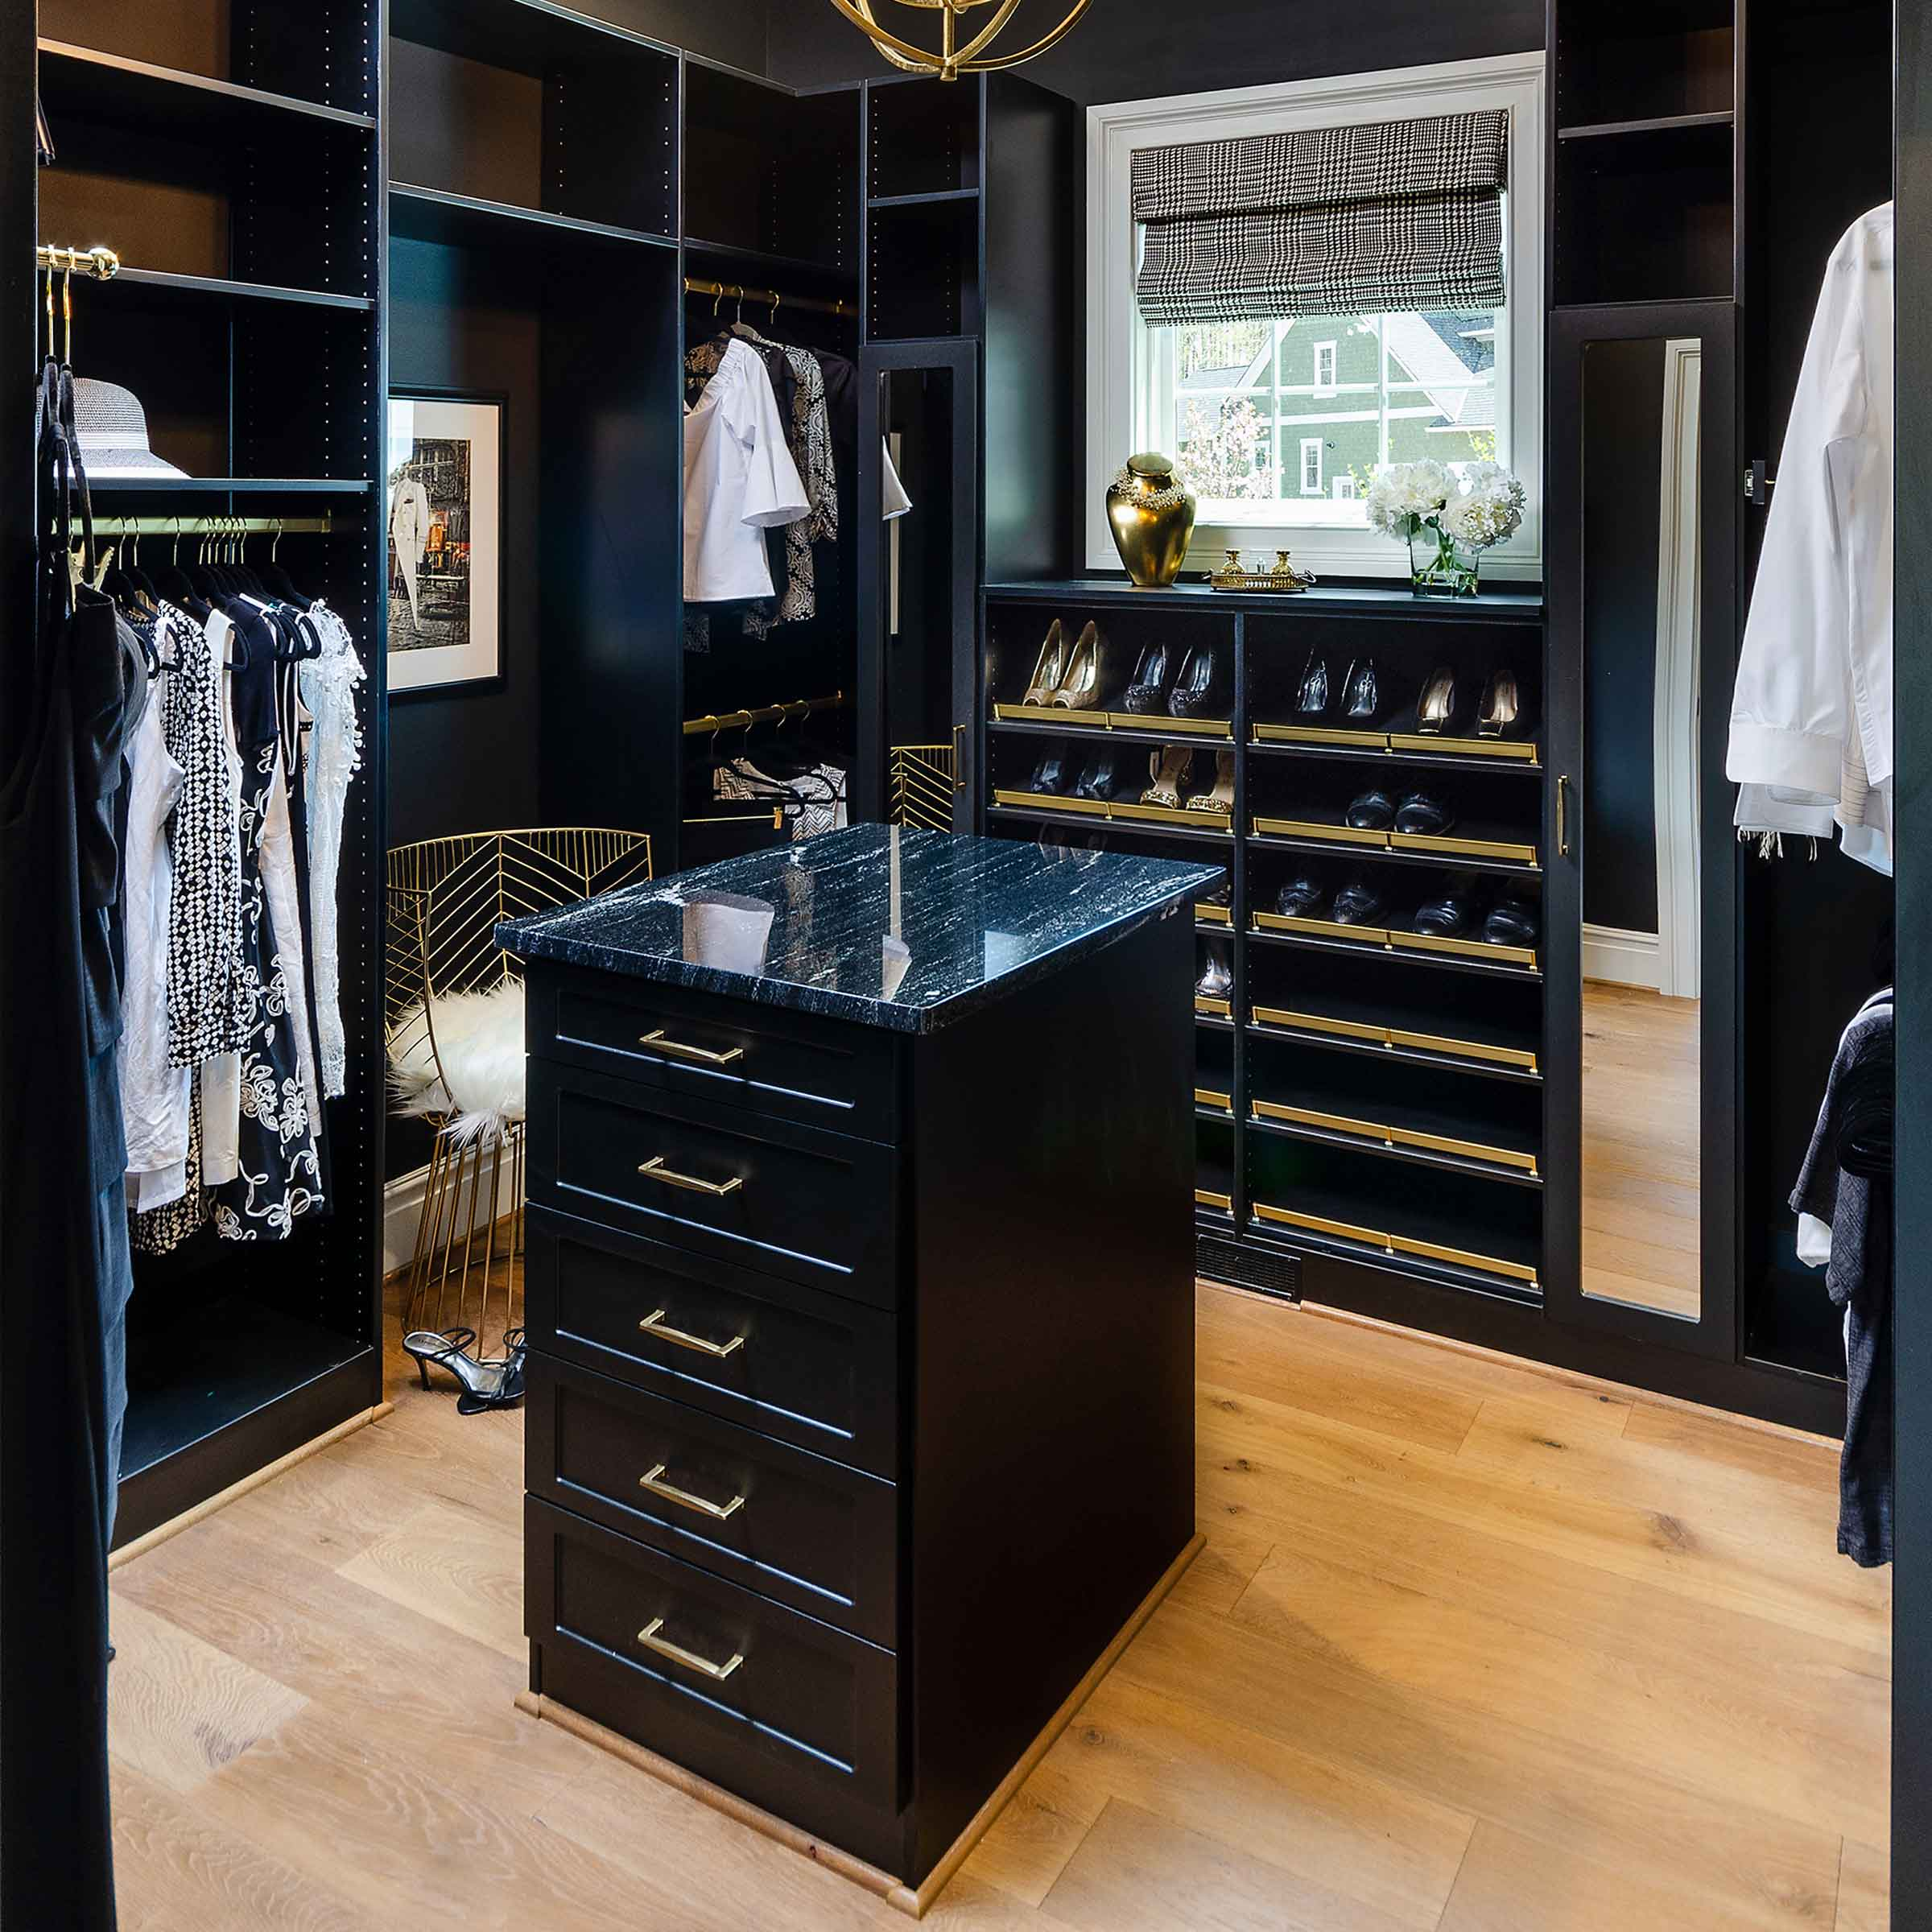 Closet Factory's Pantry and Closet Designs Featured In Three Showcase Homes